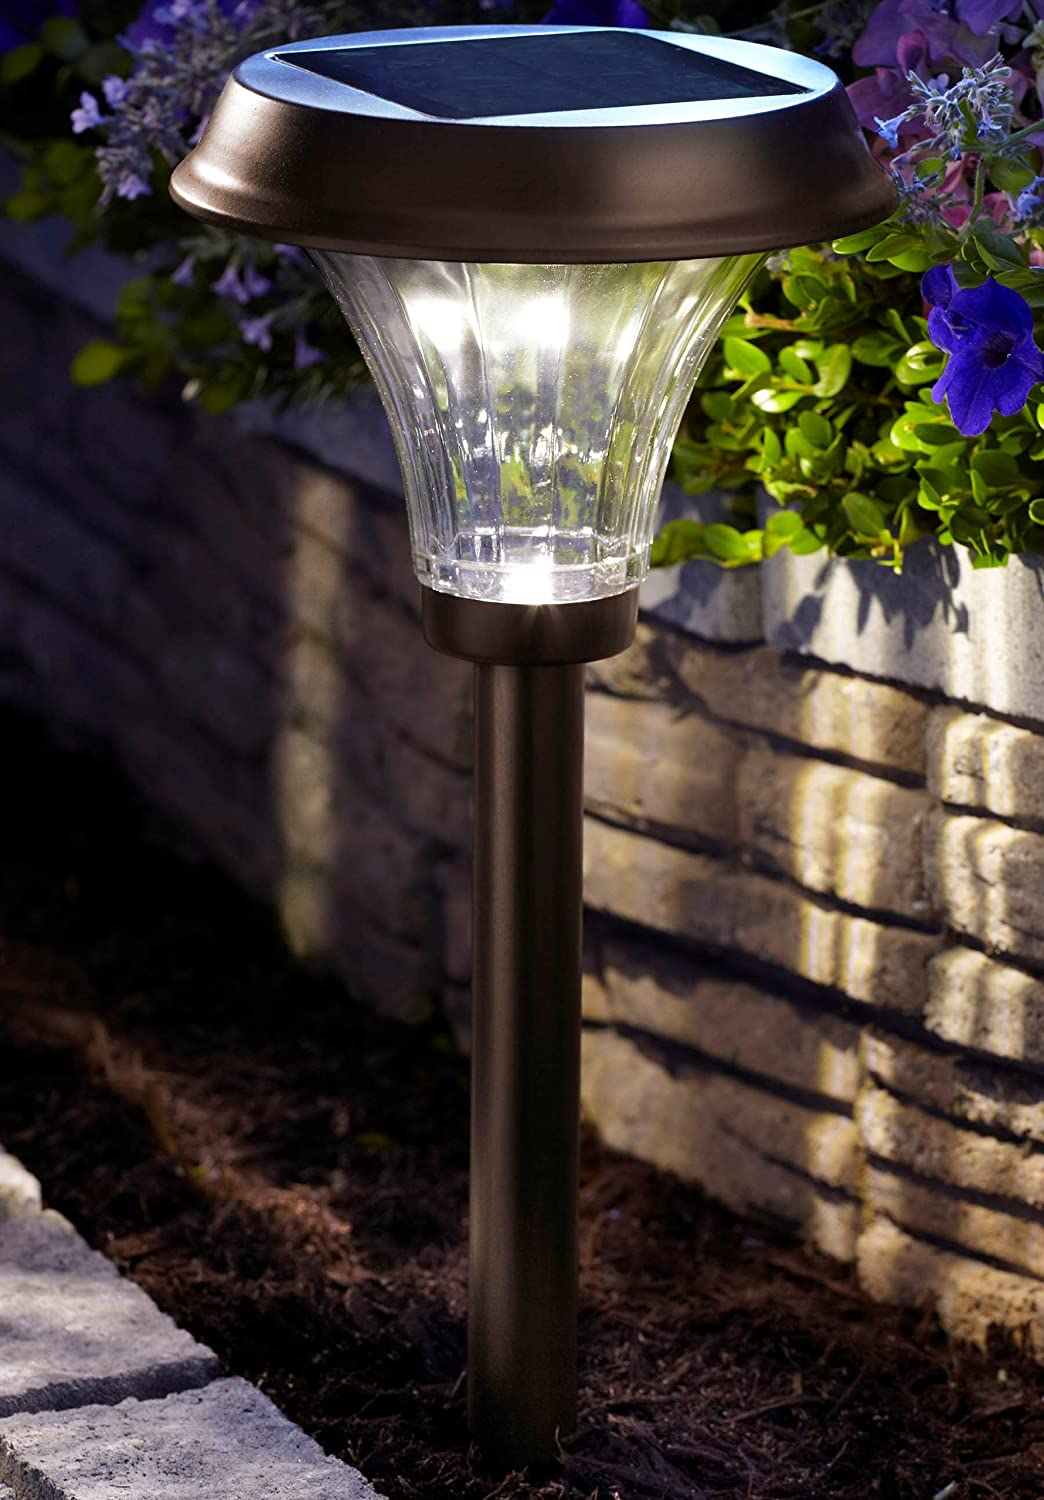 Top 15 best solar path lights in 2018 reviews and top picks moonrays richmond solar led path light workwithnaturefo